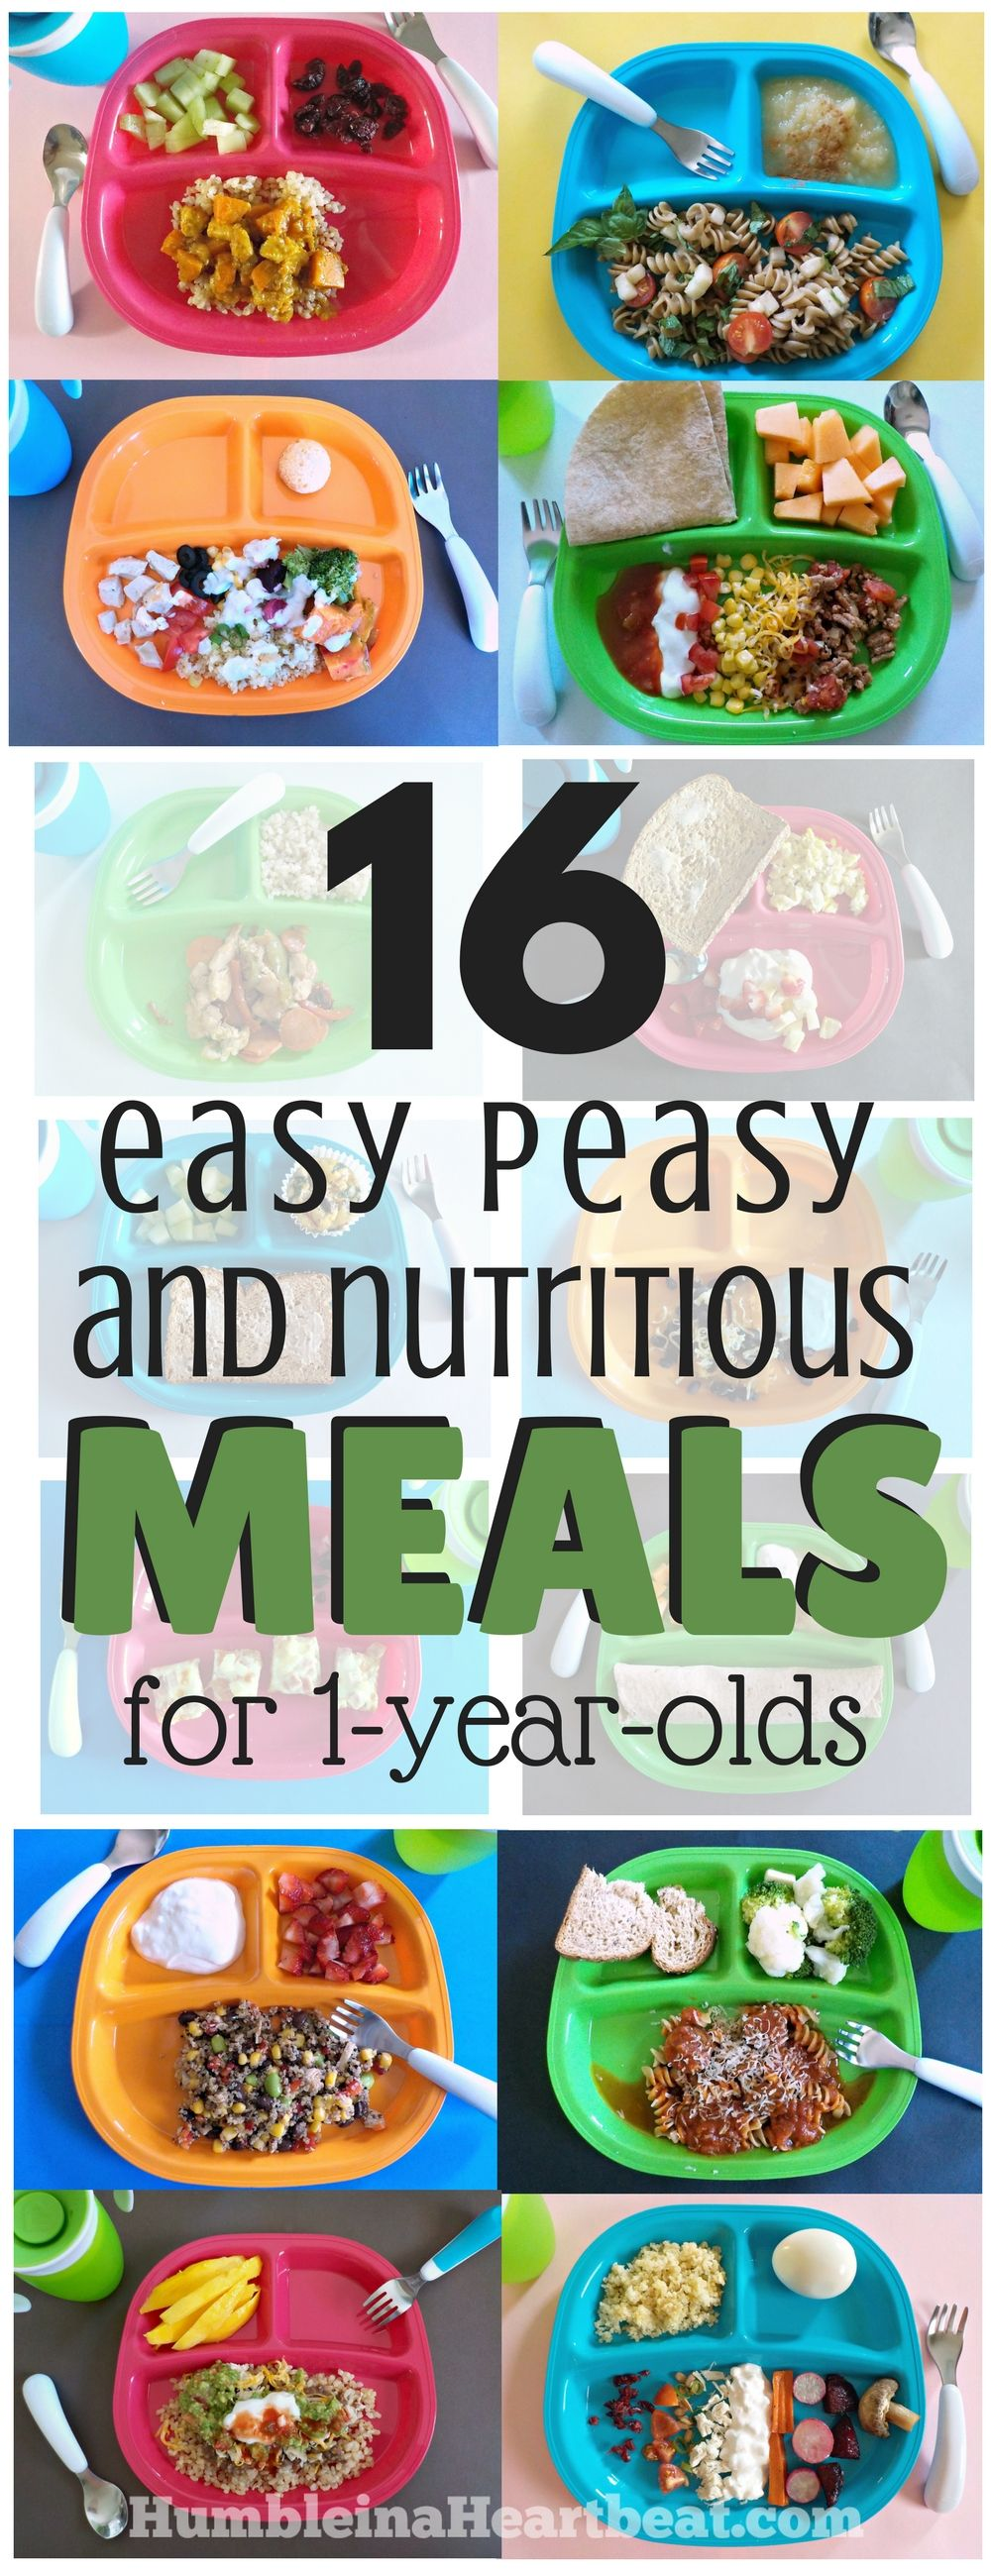 16 simple meals for your 1 year old that will make you supermom need to get dinner on the table fast these 16 simple meals for 1 year old and family are nutritious and kid approved get the meal ideas here forumfinder Choice Image